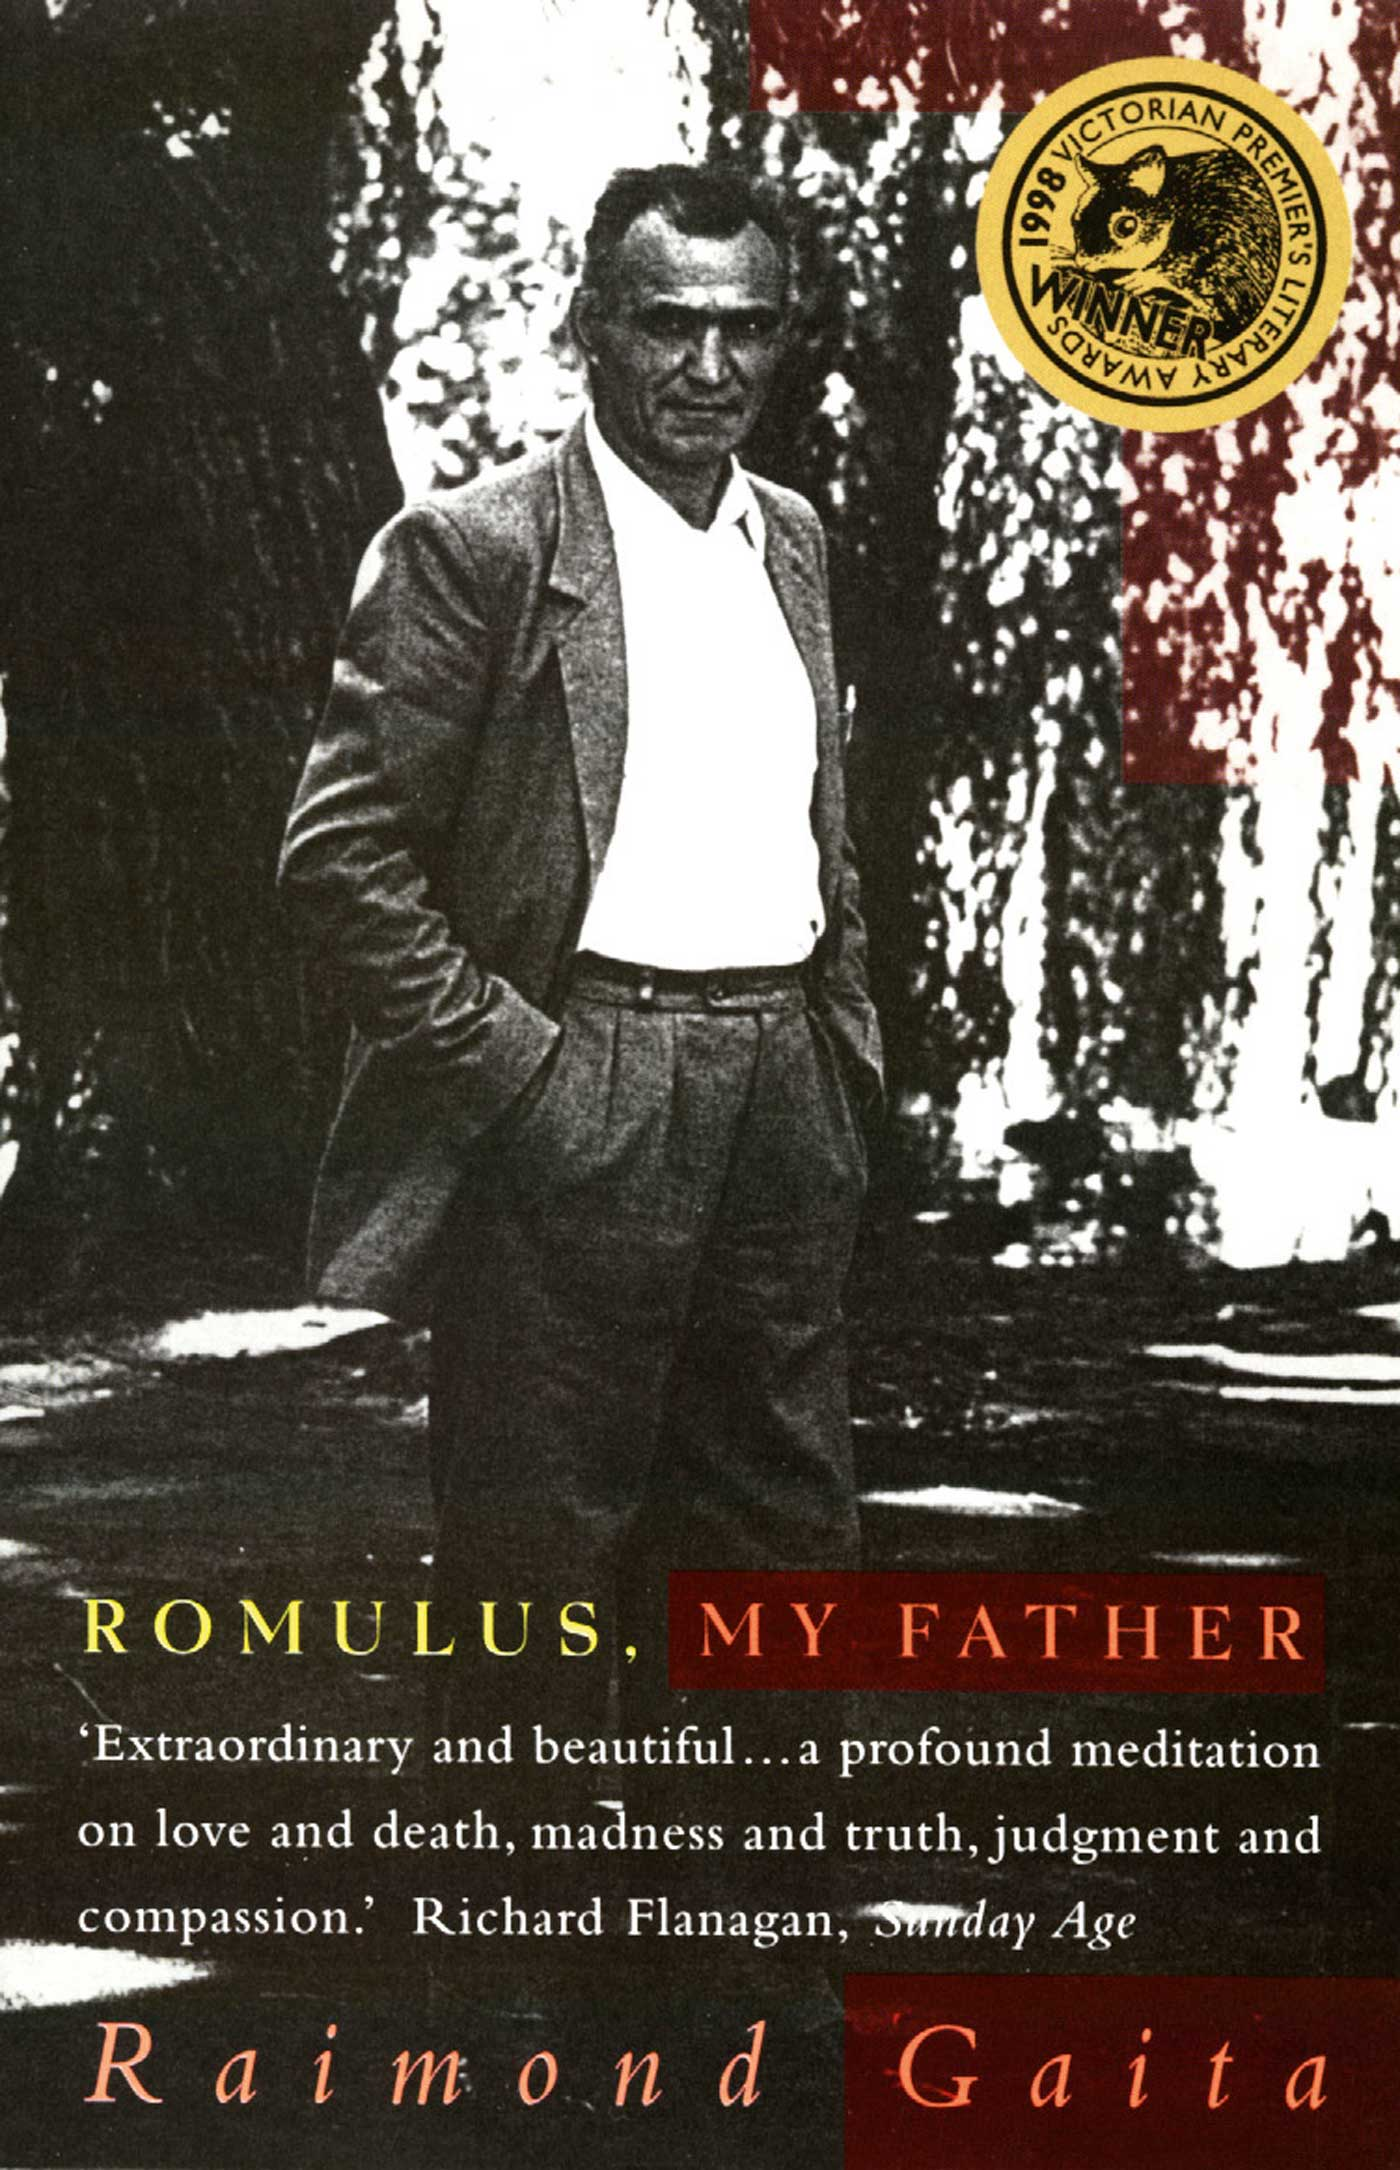 romulus my father pursuit of Study romulus belonging quotes flashcards at proprofs - these are my quotes  for my belonging essay on romulus my father my additional texts were.